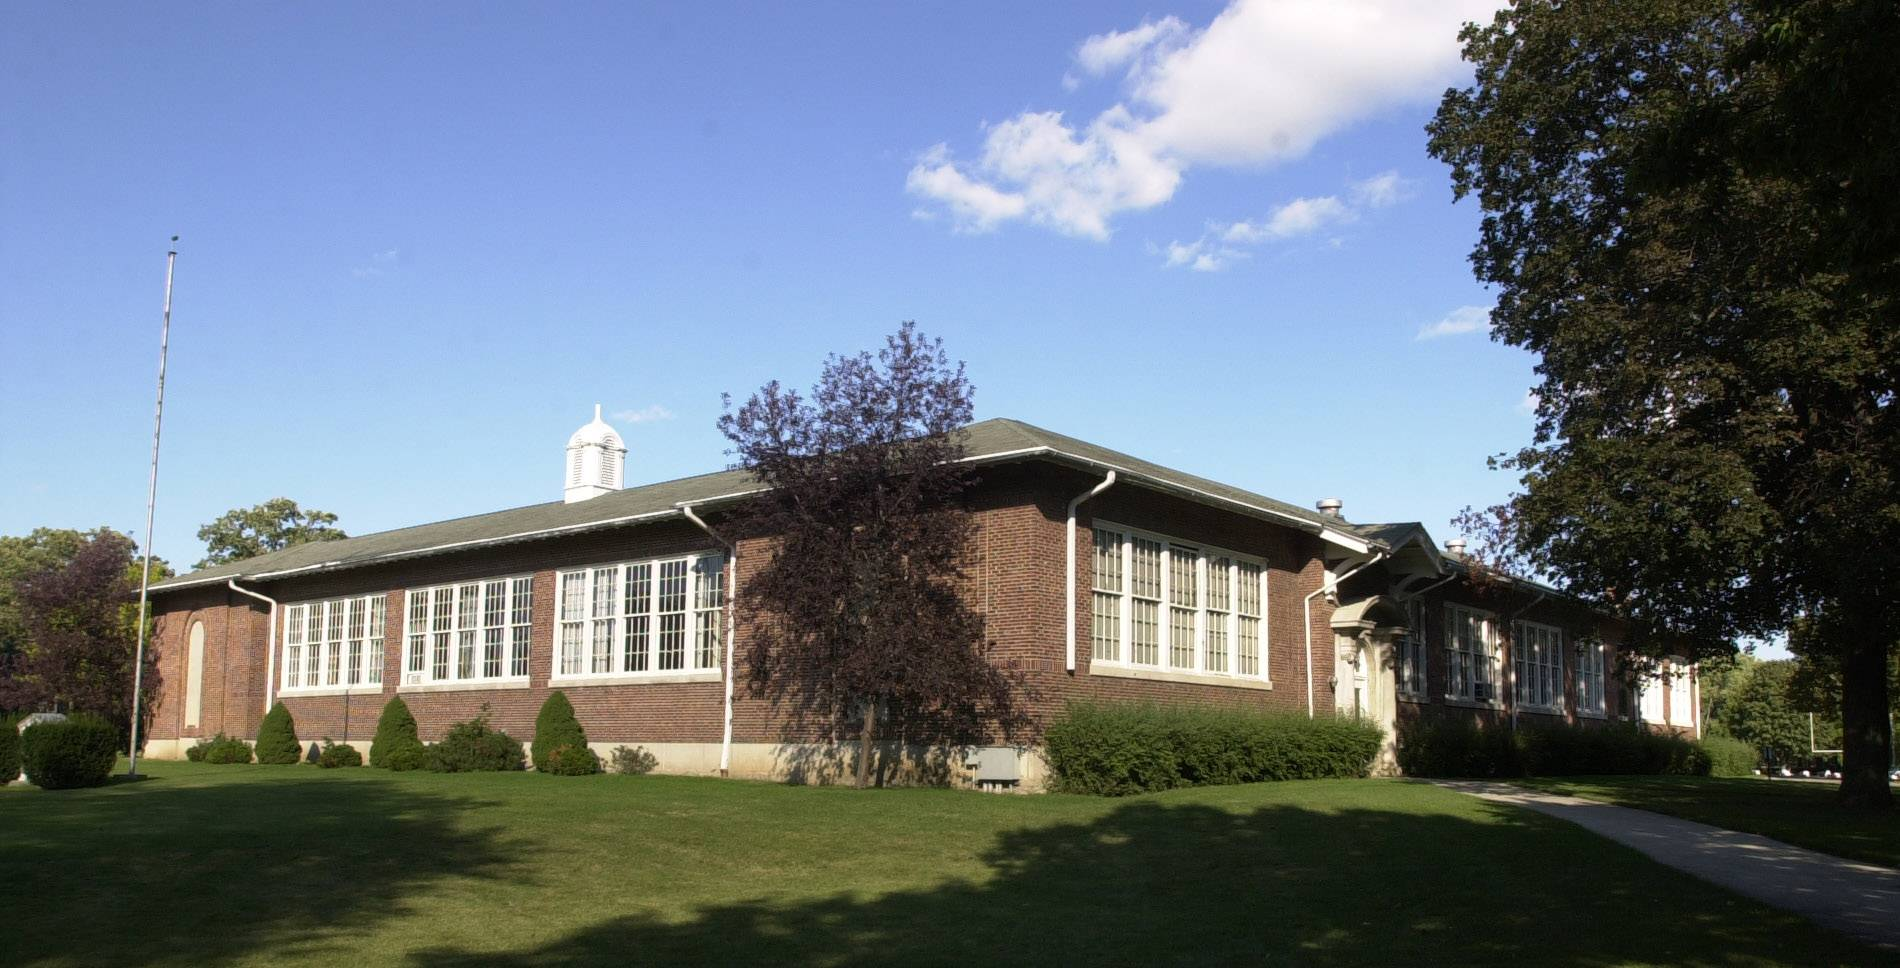 The original Libertyville Township High School is scheduled to be demolished this fall.